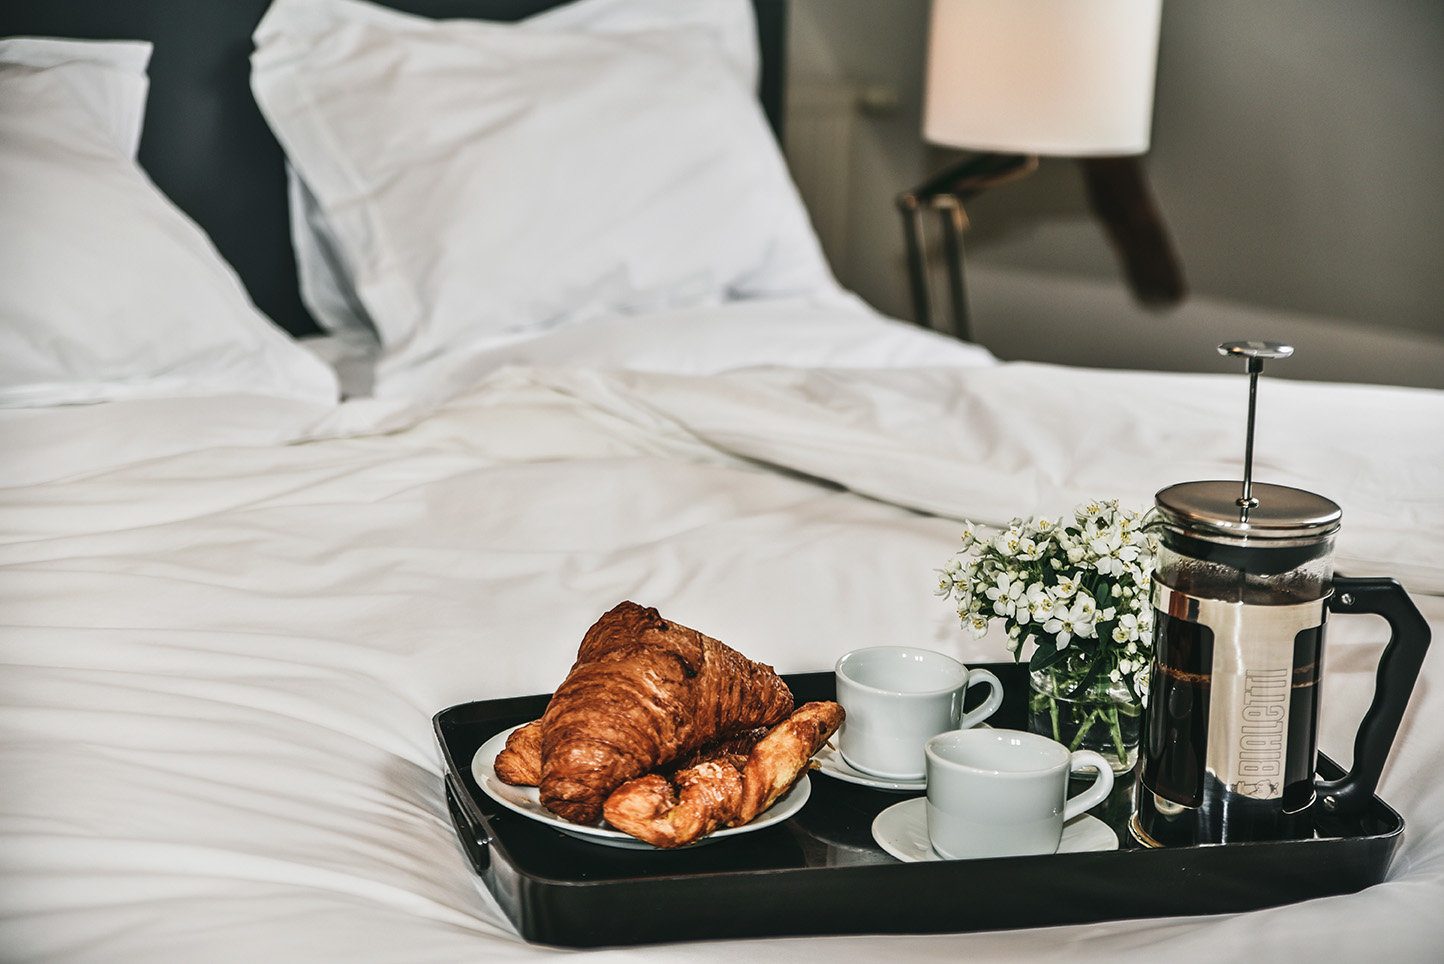 A tray with croissants on coffee placed on crisp white Egyptian cotton sheets in a bedroom in Le Mas, a luxury holiday rental in the Dordogne